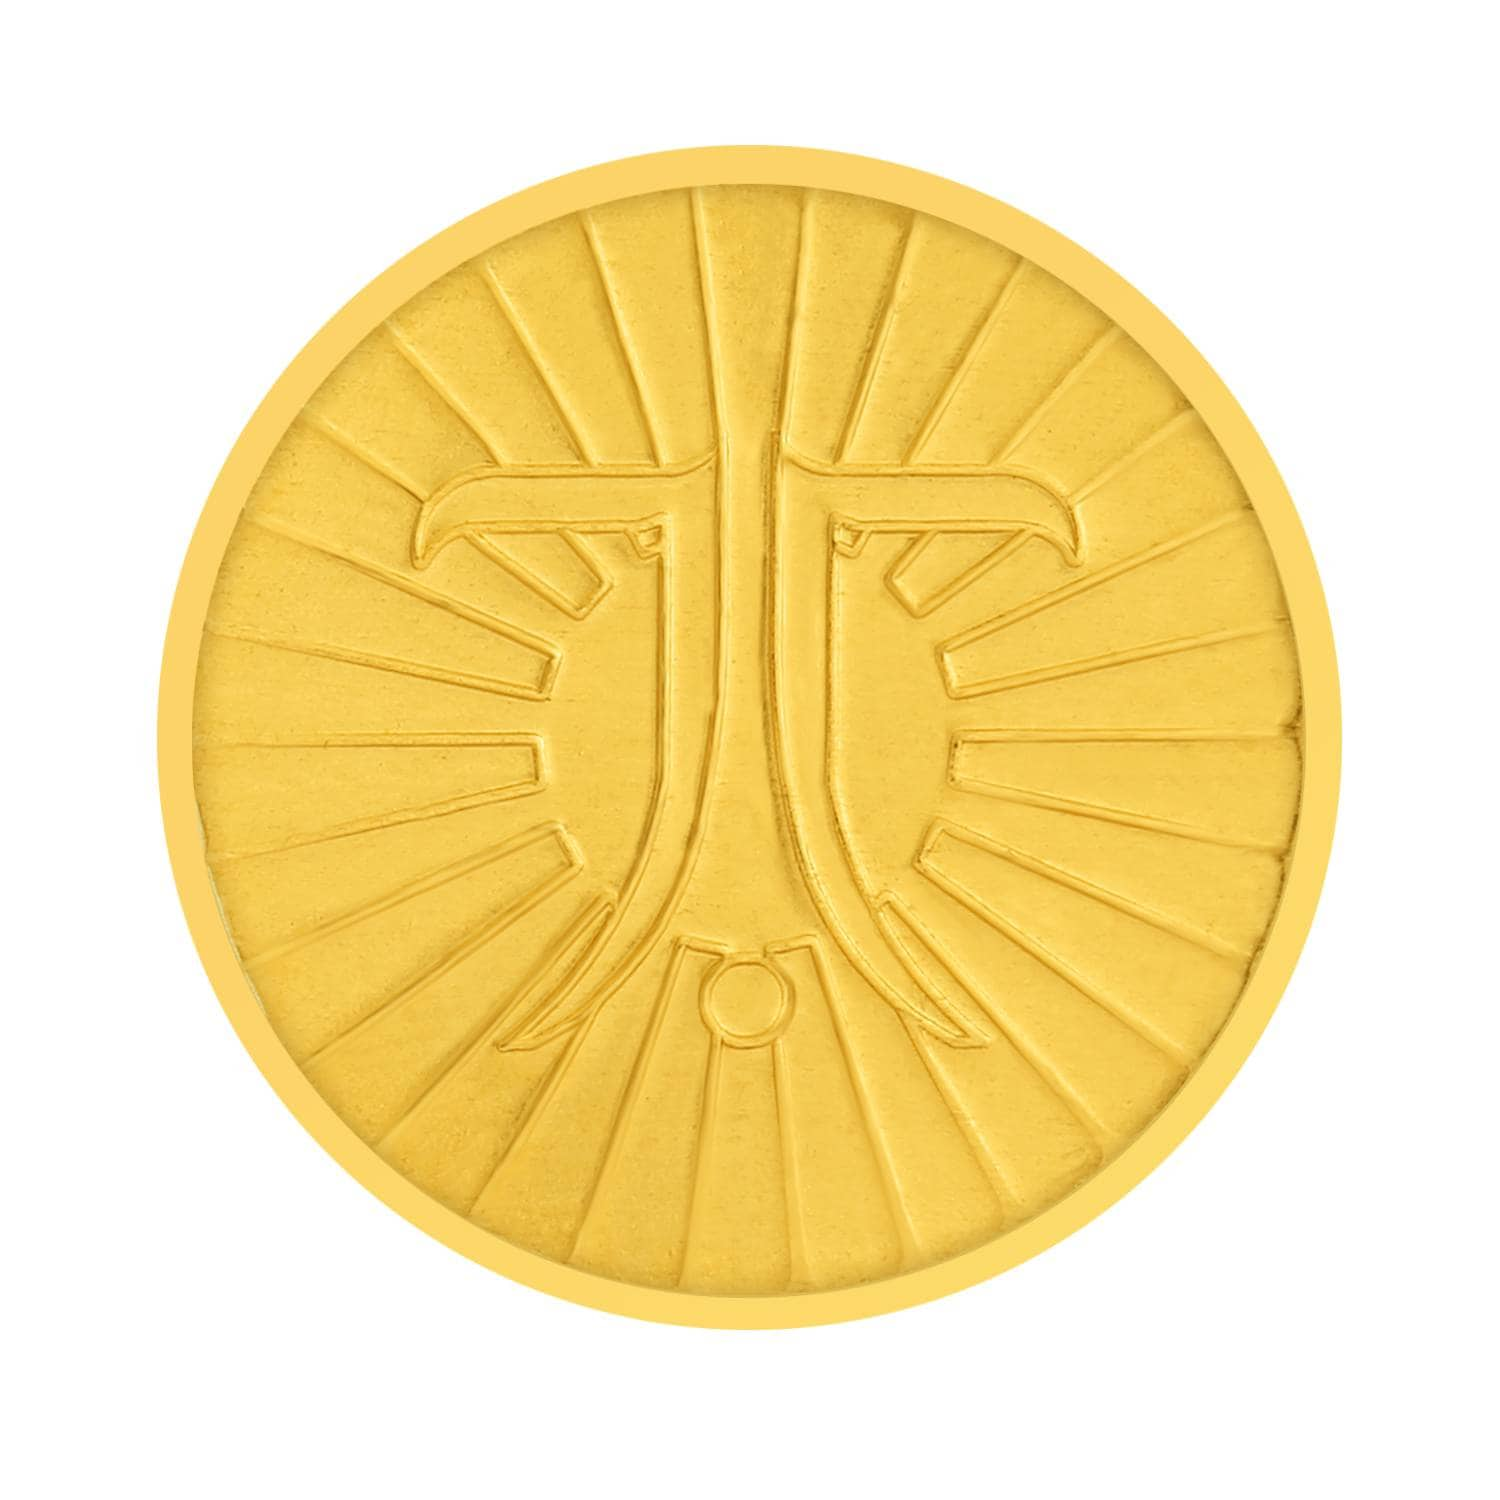 Buy Tanishq 24kt 10 gram Gold Coin At Best Price line India Titan